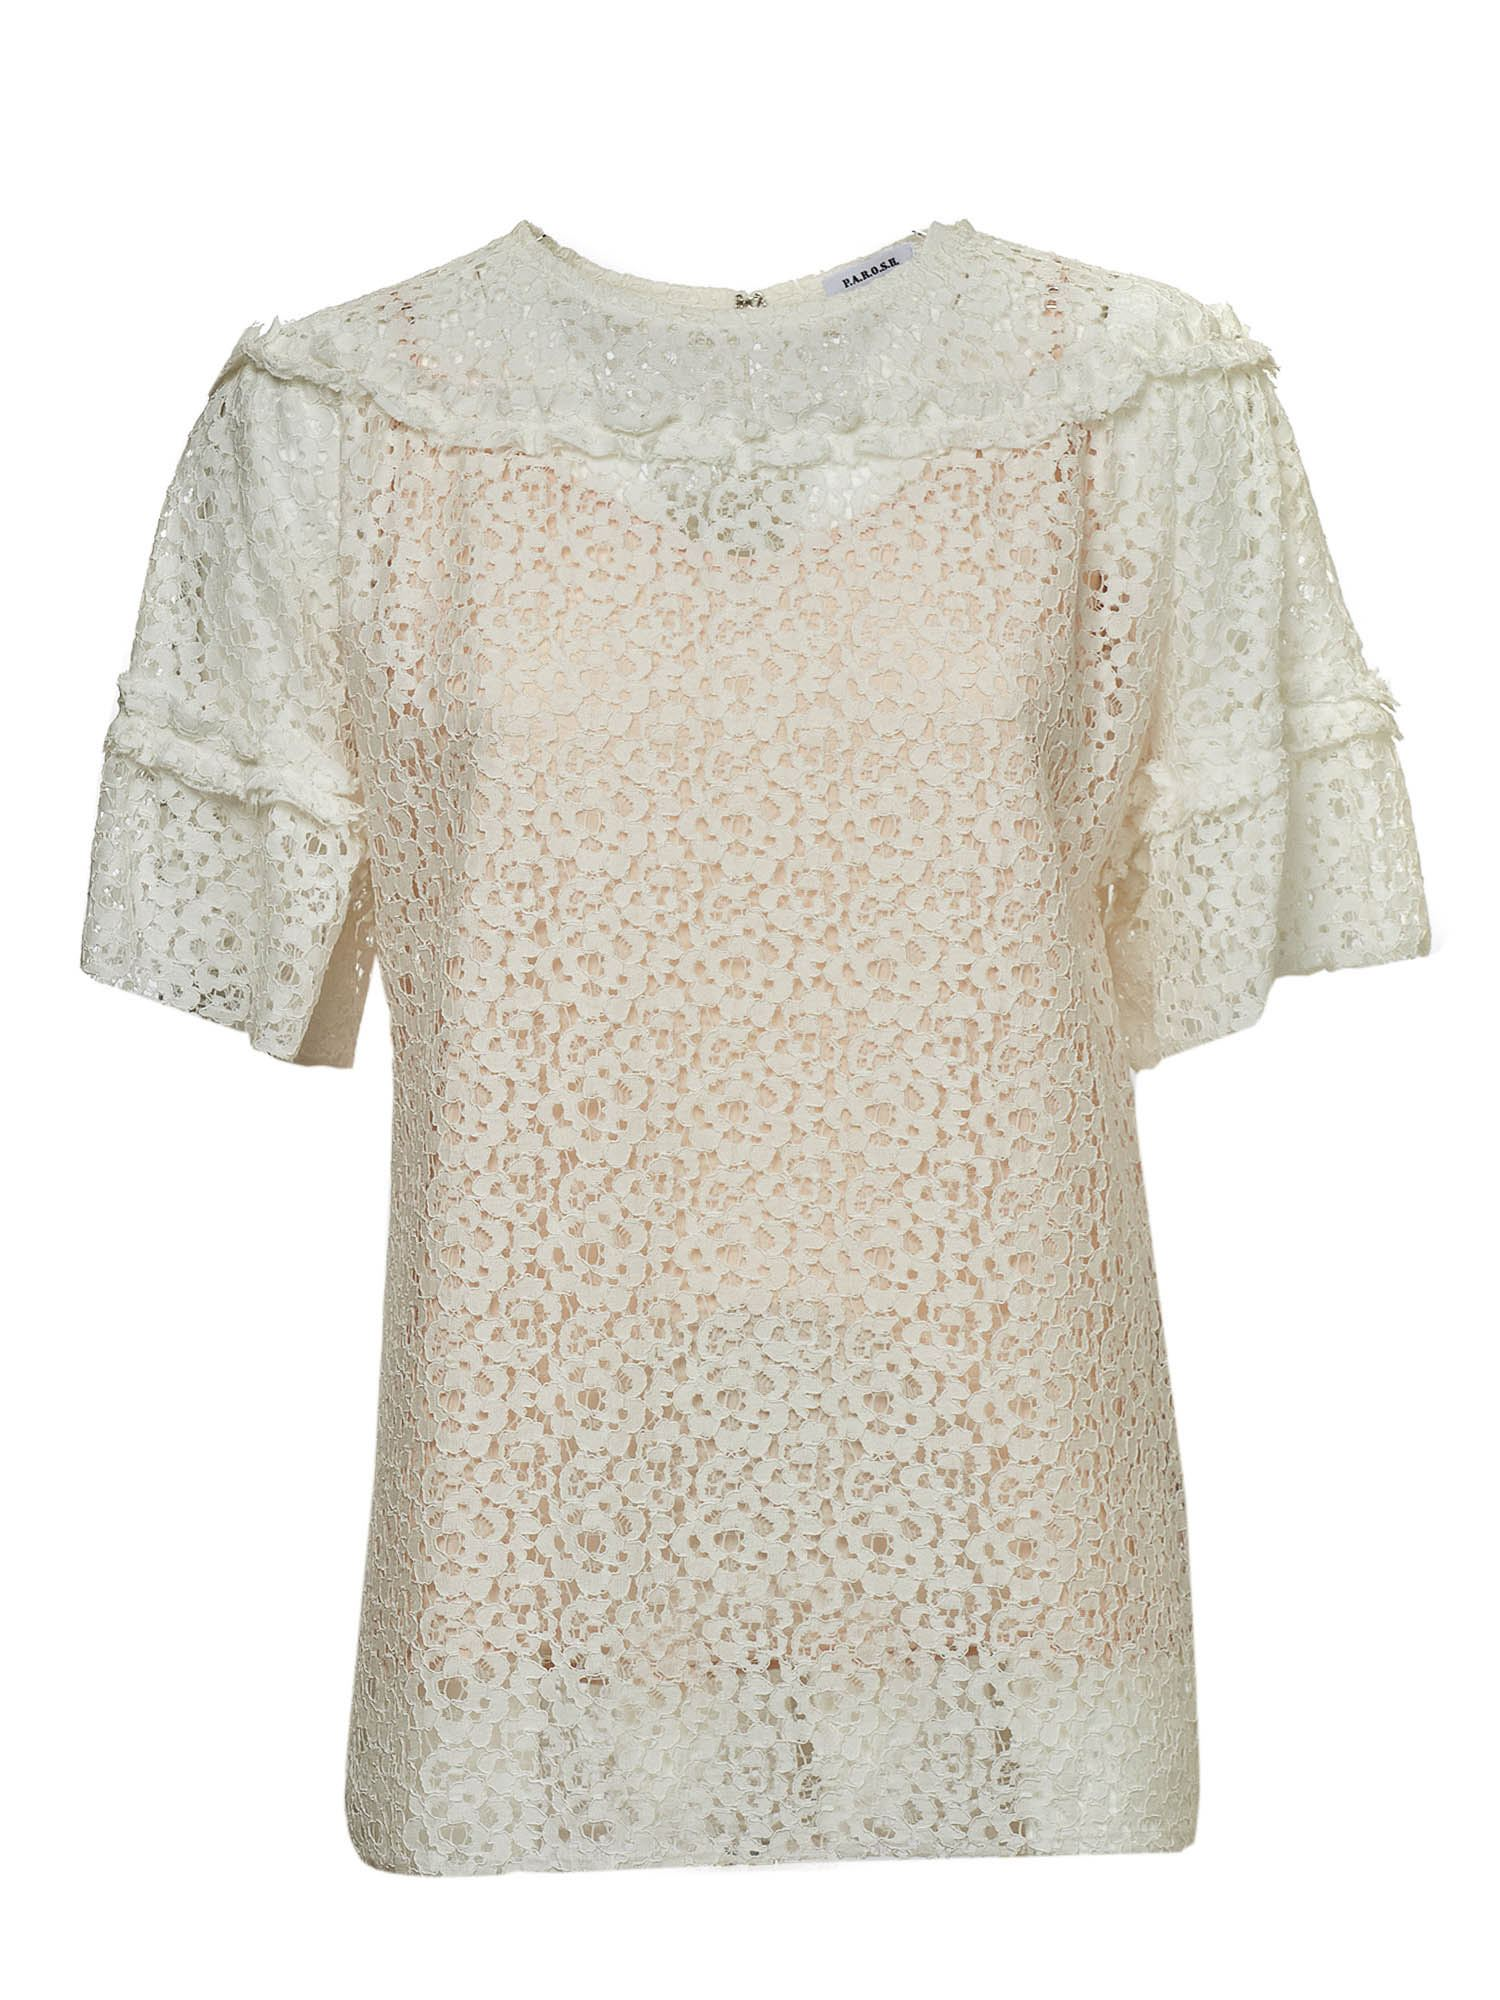 P.a.r.o.s.h. LACE TOP IN WHITE